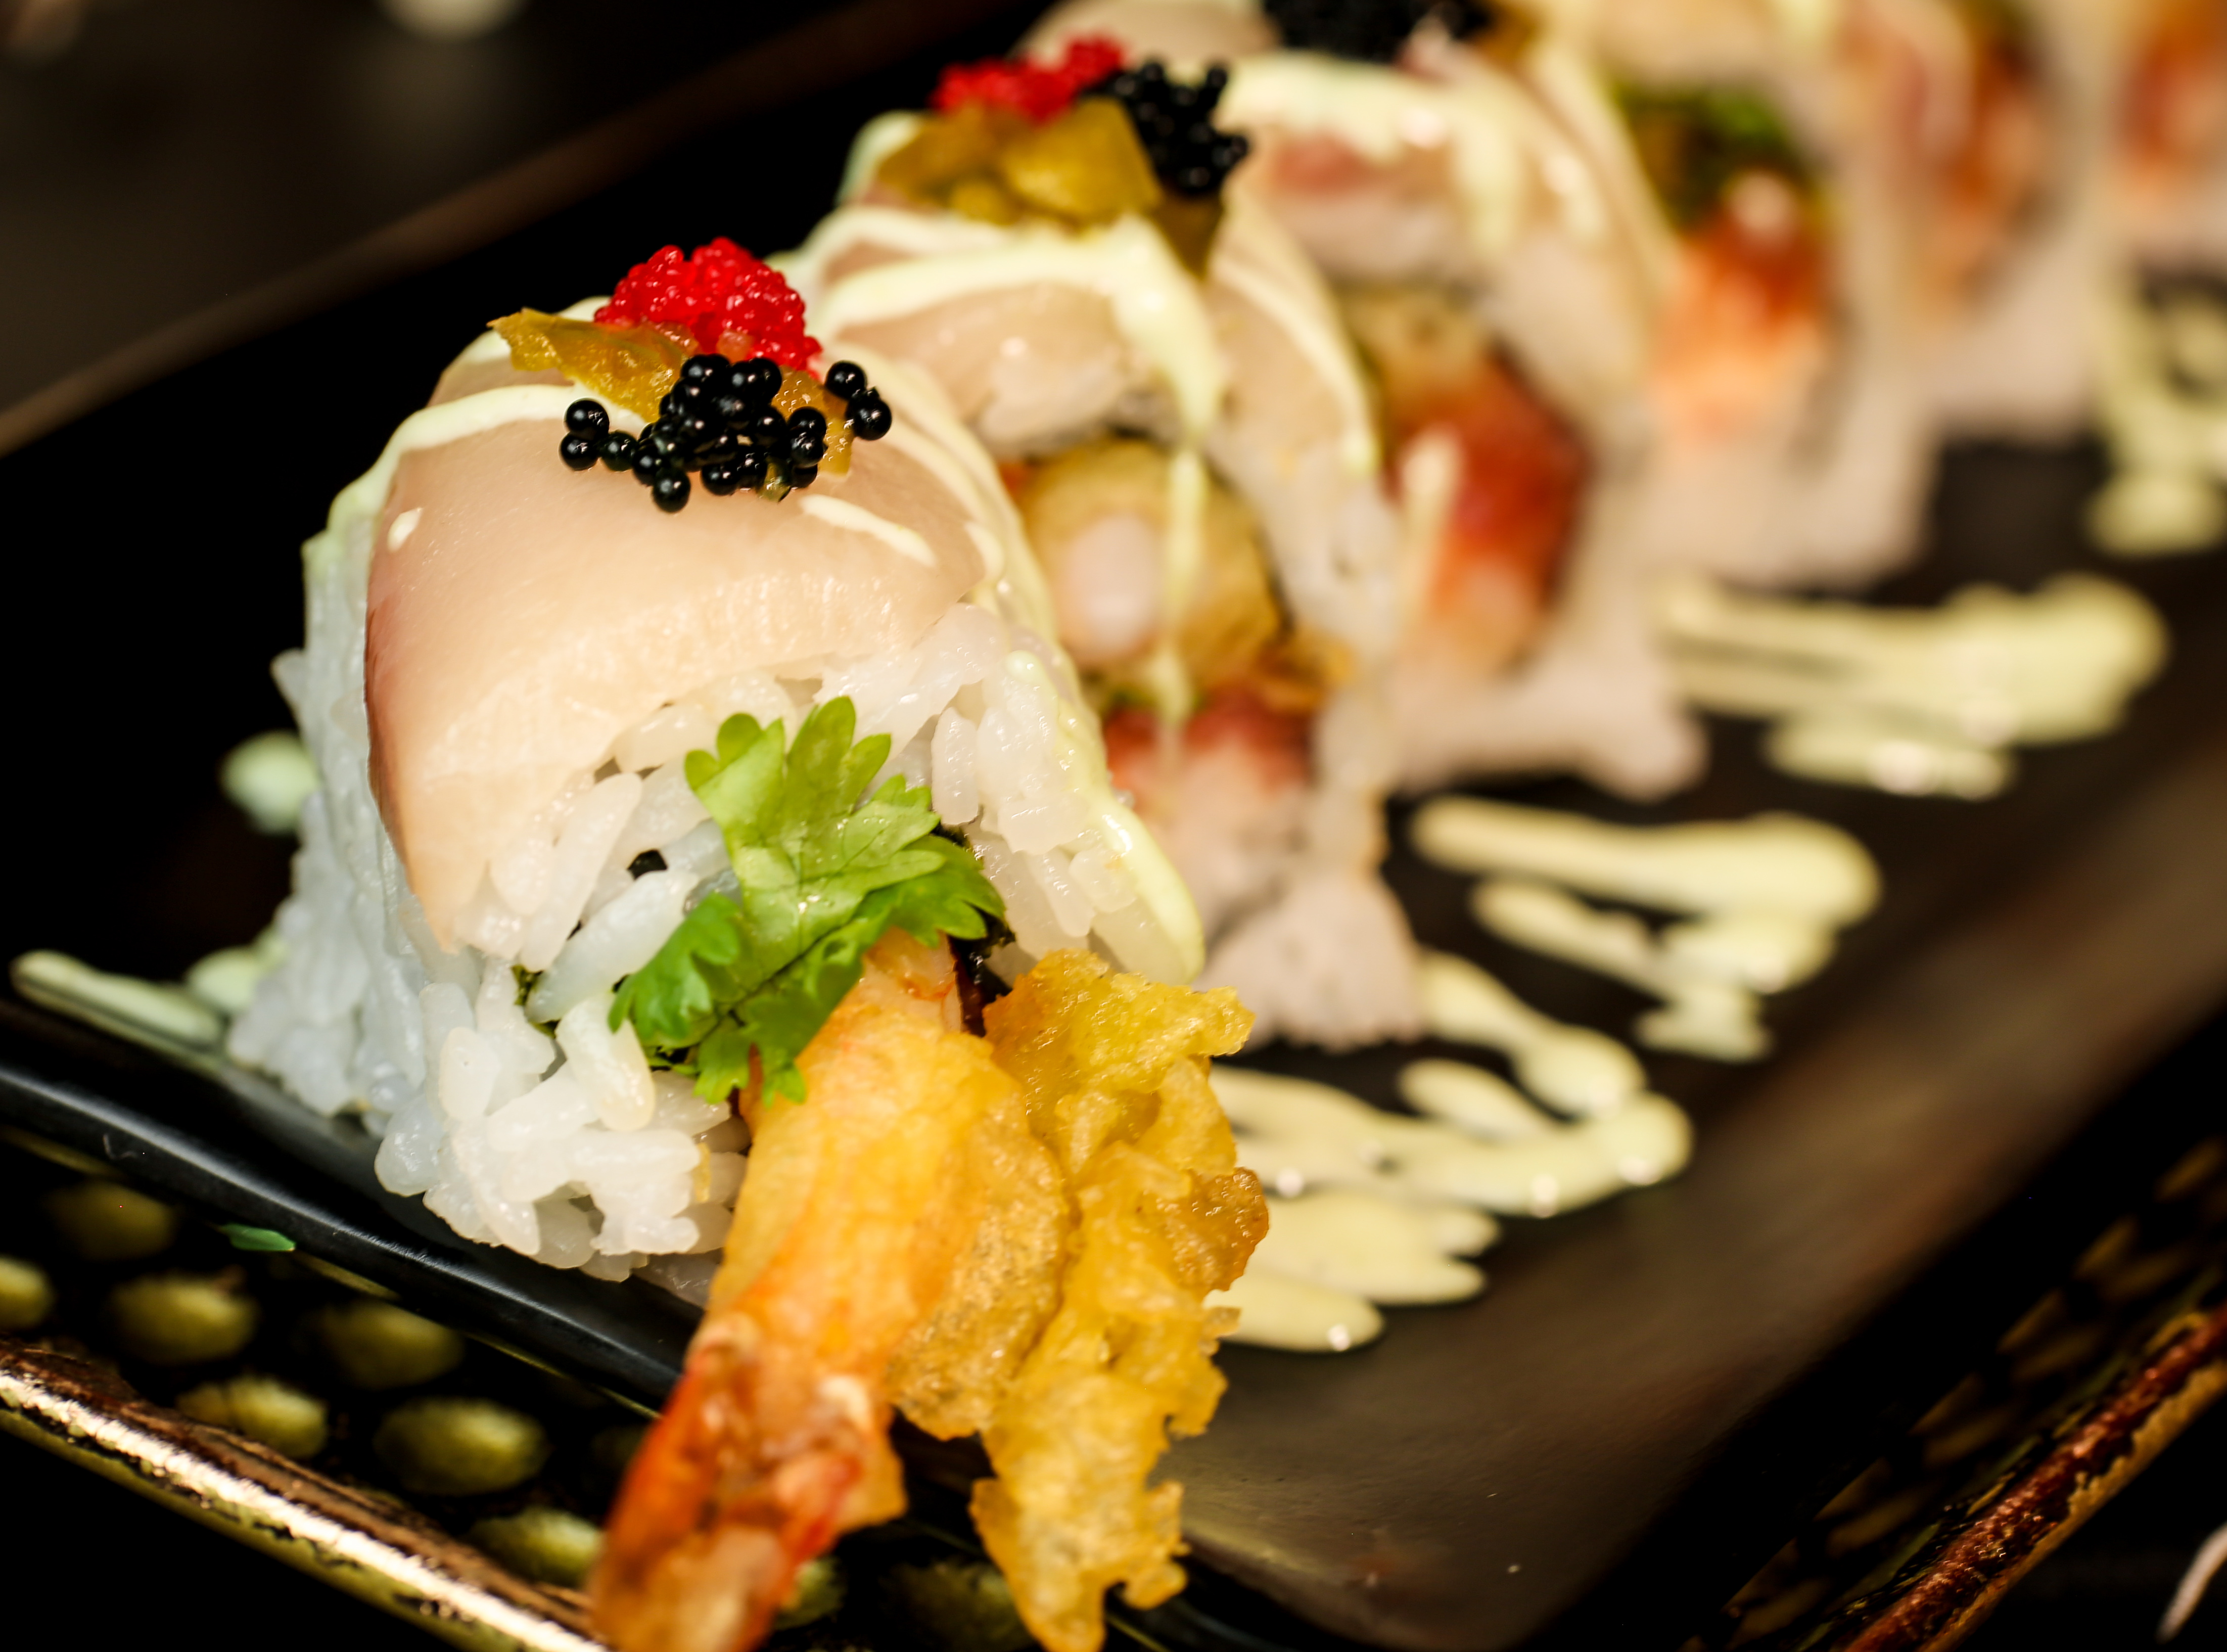 Sushi 2 by Lillipop 774A5620